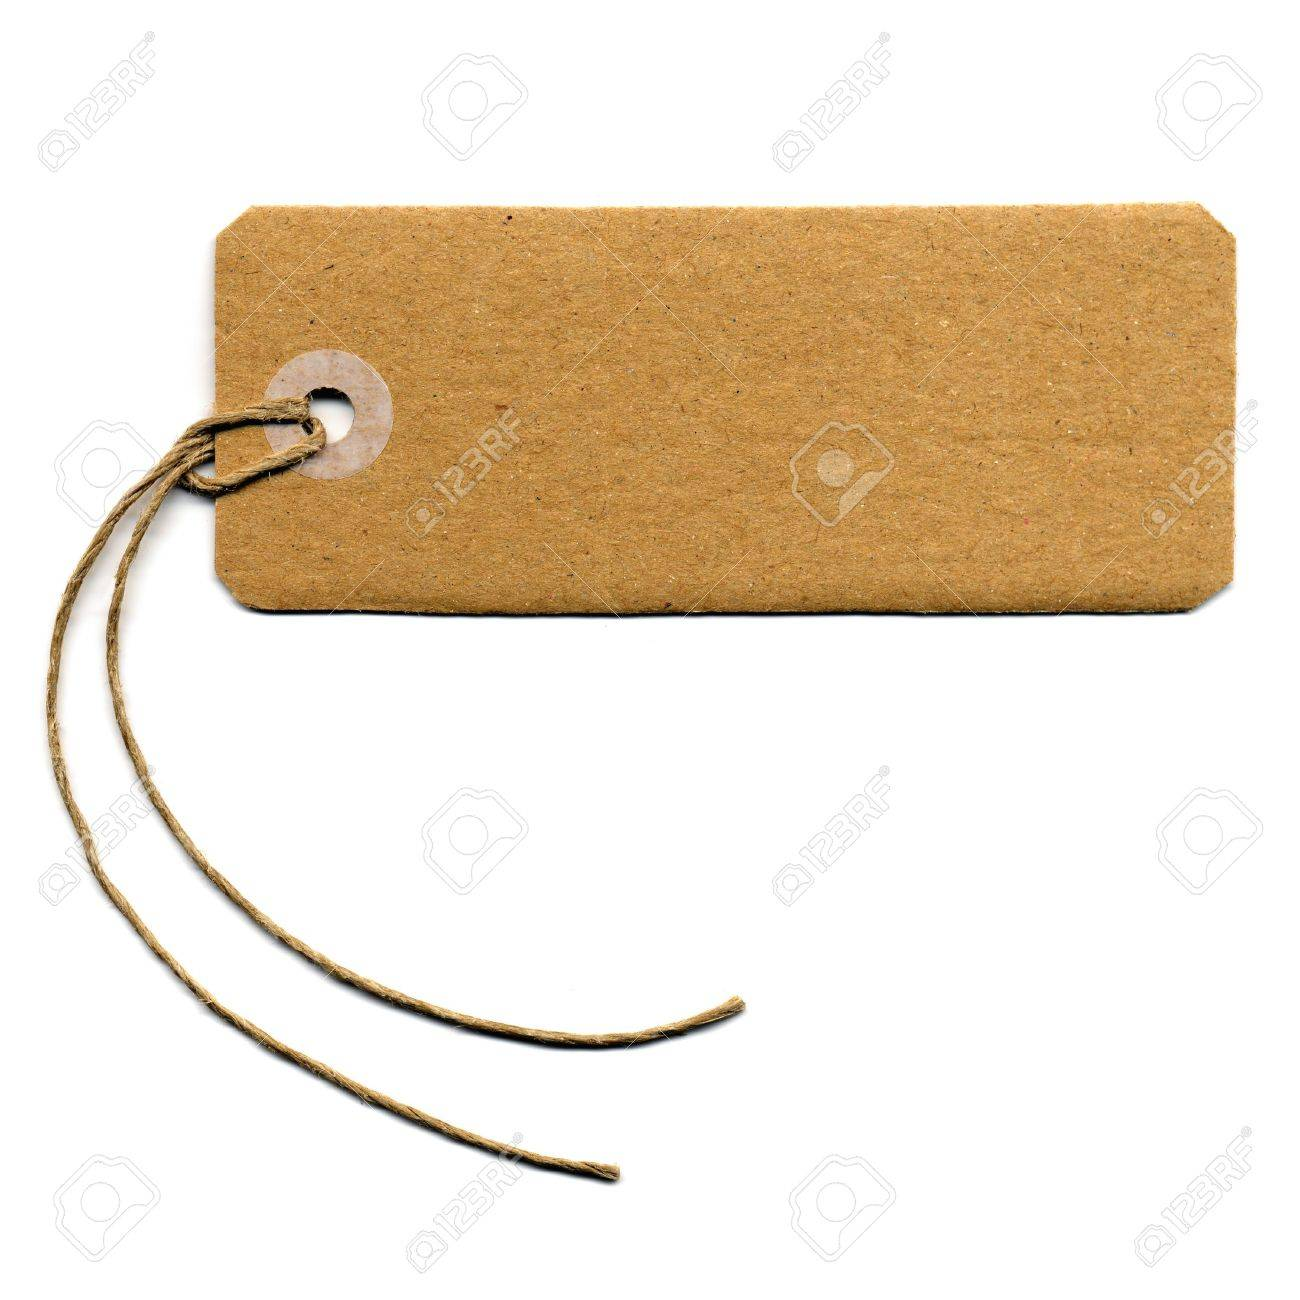 Price Tag Or Address Label With String Stock Photo, Picture And ...